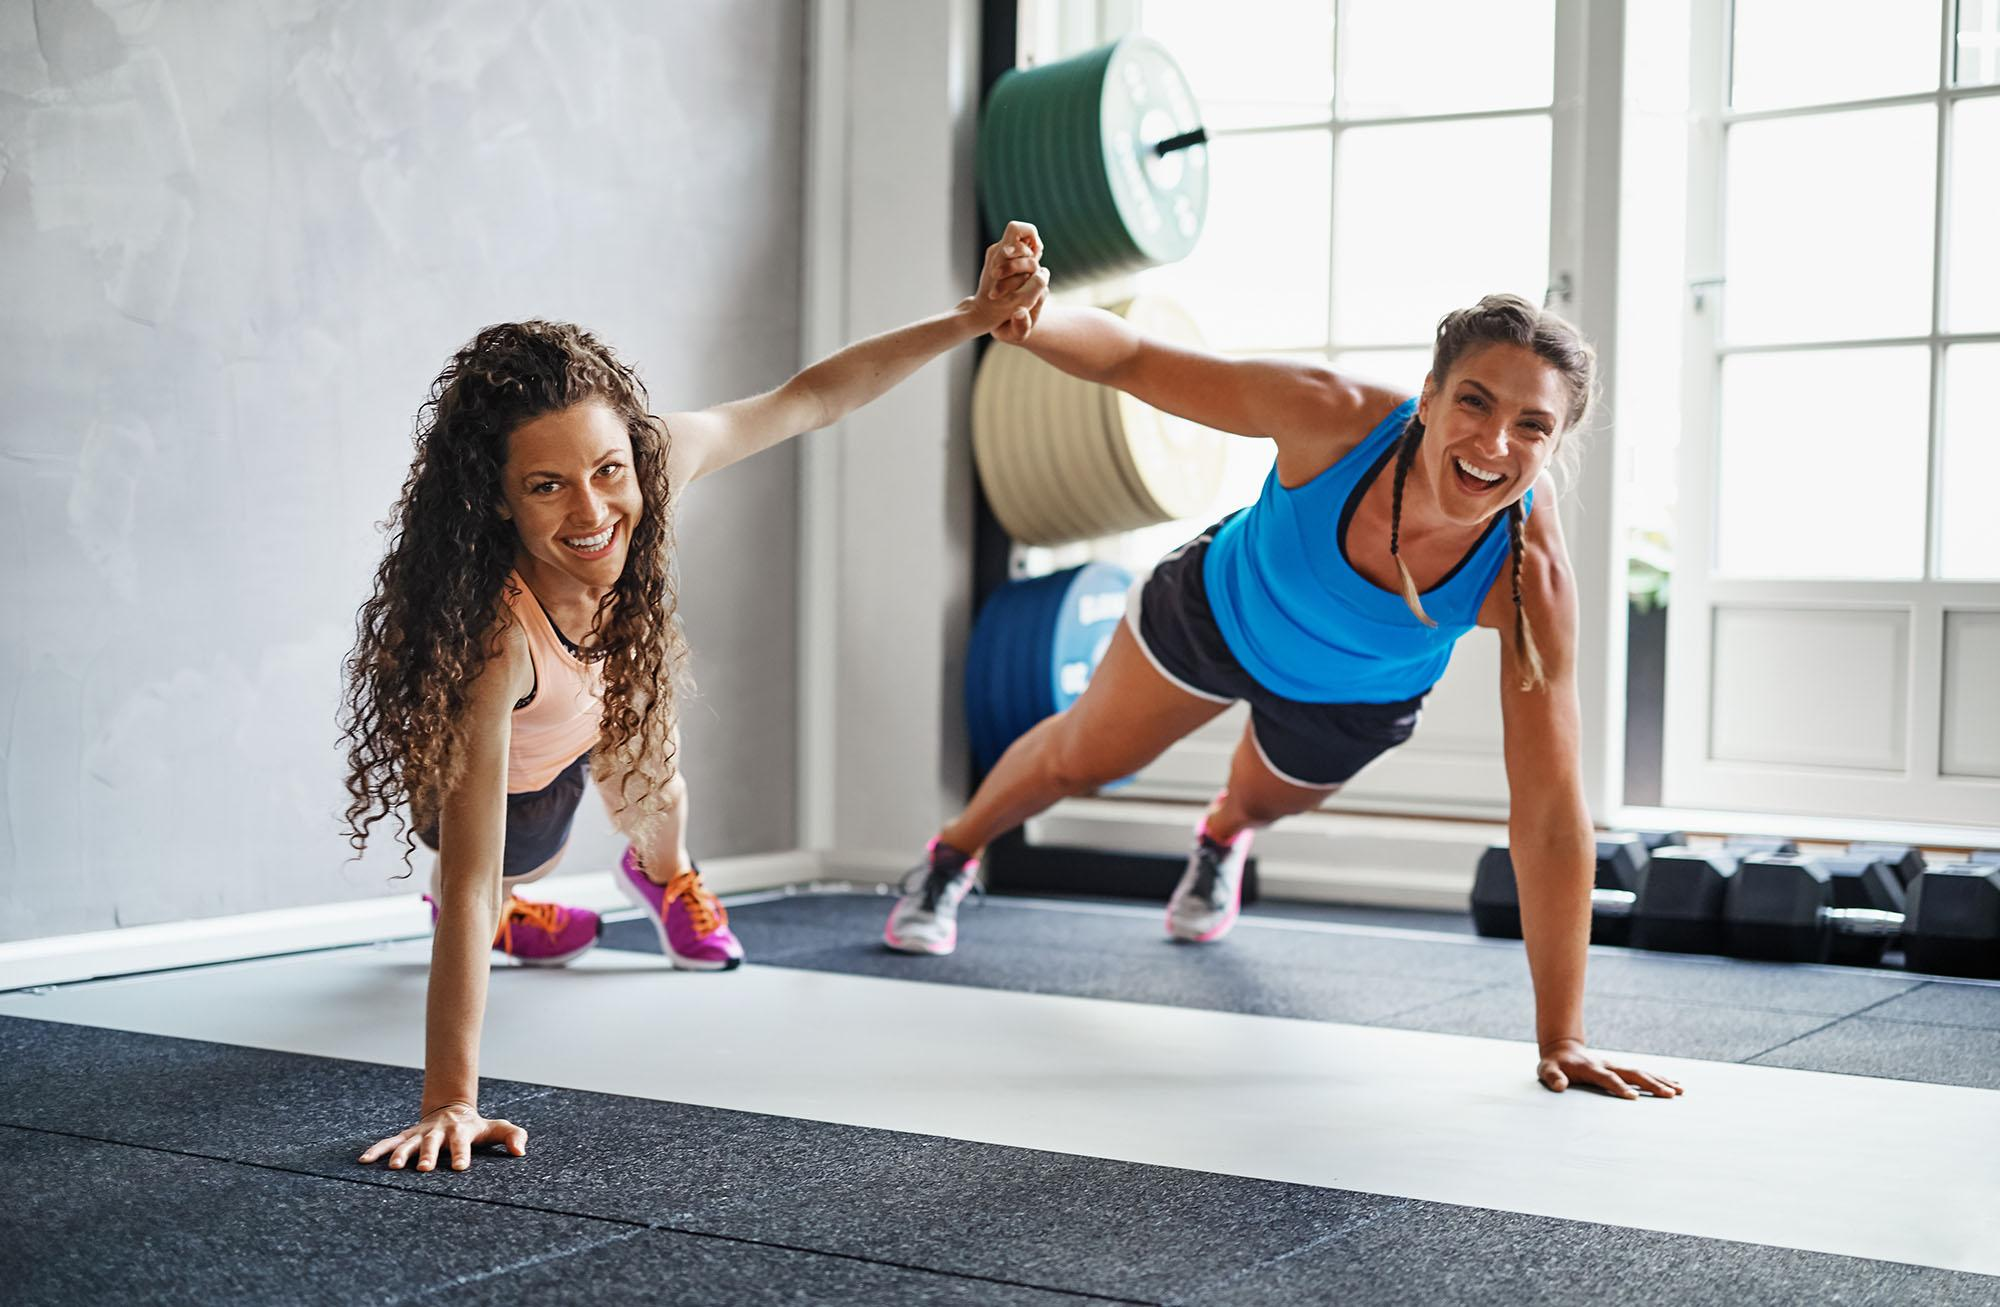 5 Tips for Finding the Perfect Workout Buddy